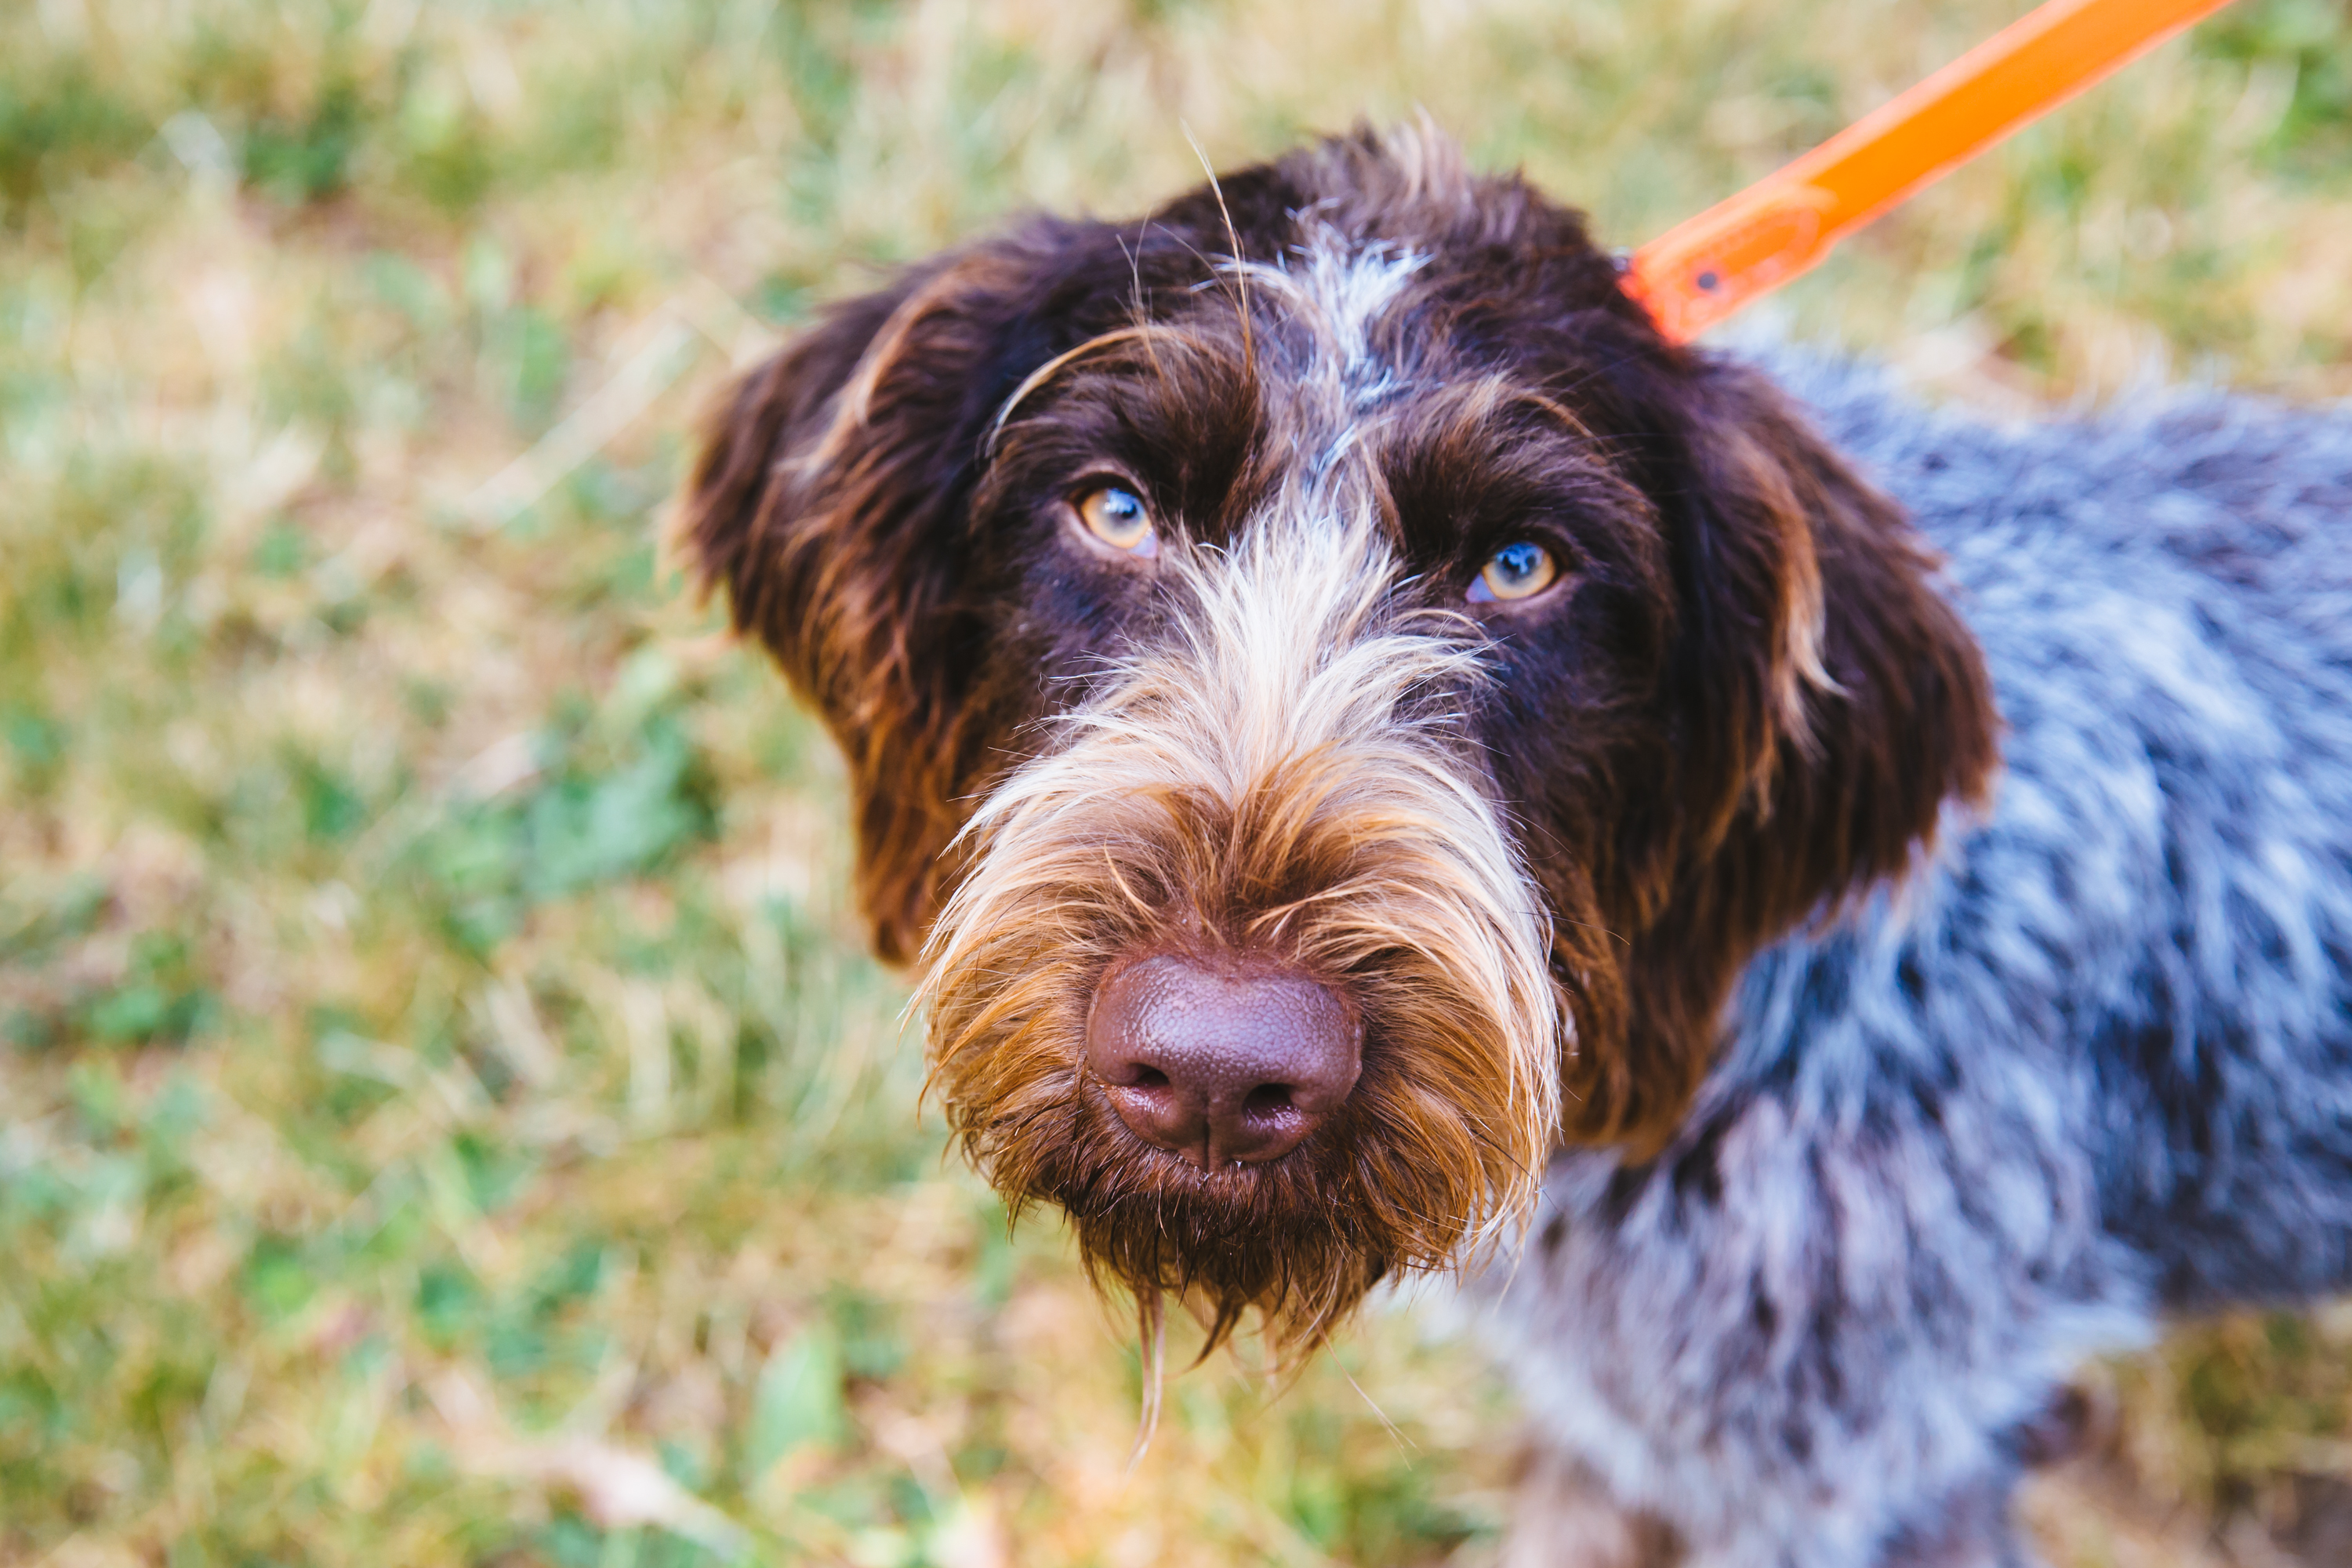 Everyone meet, Gertrude McFuzz. Gertie may or may not have one of the best names we've ever come across in our RUFFined Spotlight series. Gertrude is a 10-month-old German Wirehaired Pointer who is living the dream in Seattle. She is the youngest of three dogs. Gertrude McFuzz likes to play with her brother, swim, and eat poop. She dislikes people walking down her driveway. (Image: Sunita Martini / Seattle Refined)